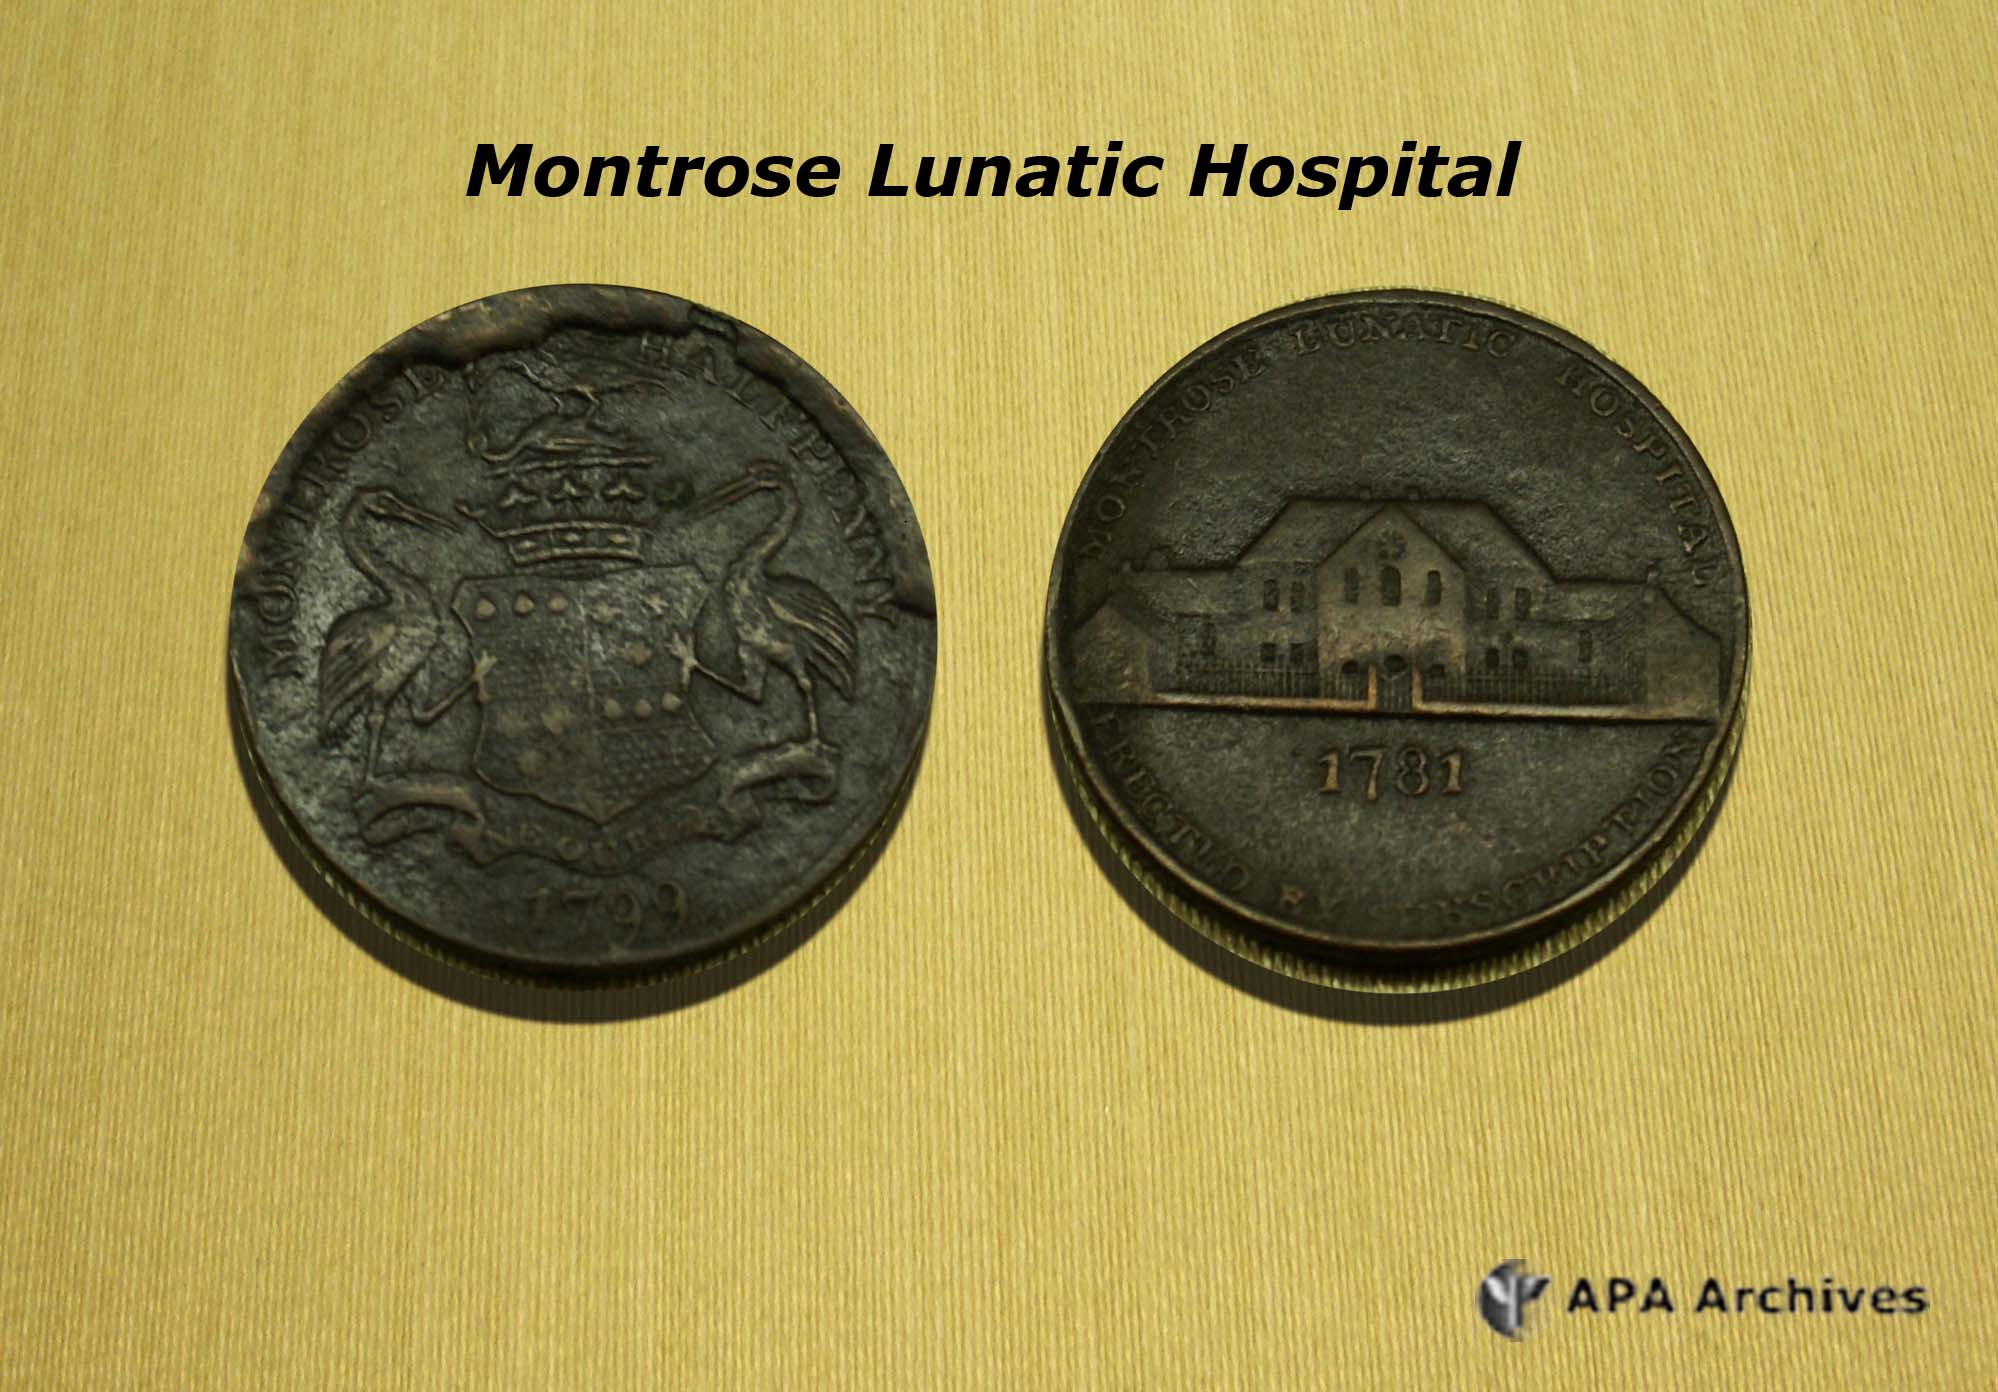 full-montrose-lunatic-hospital